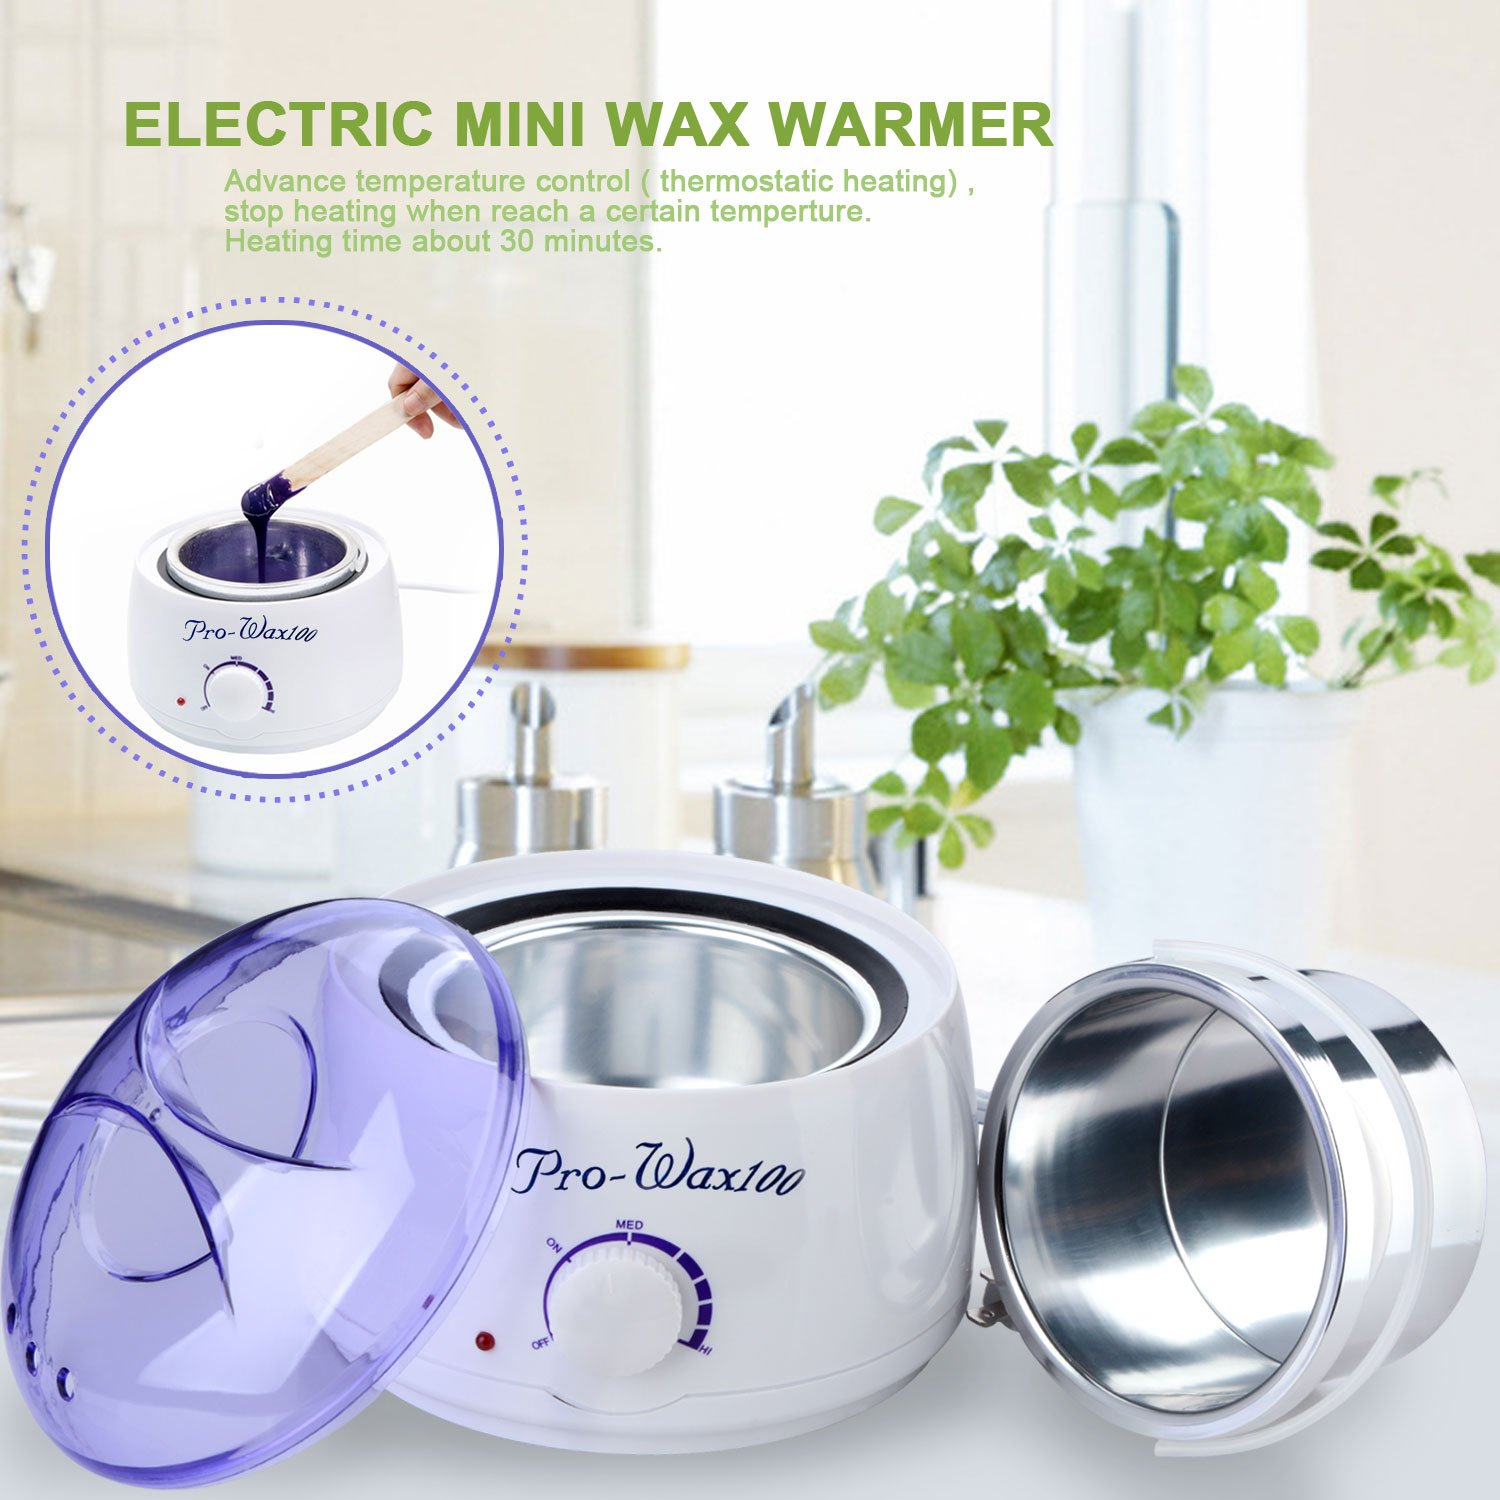 ASDOMO 500CC Portable Electric Hair Removal Wax Warmer+10.58 OZ Hair Removal Hard Wax Beans+10PCS Wax Applicator Sticks